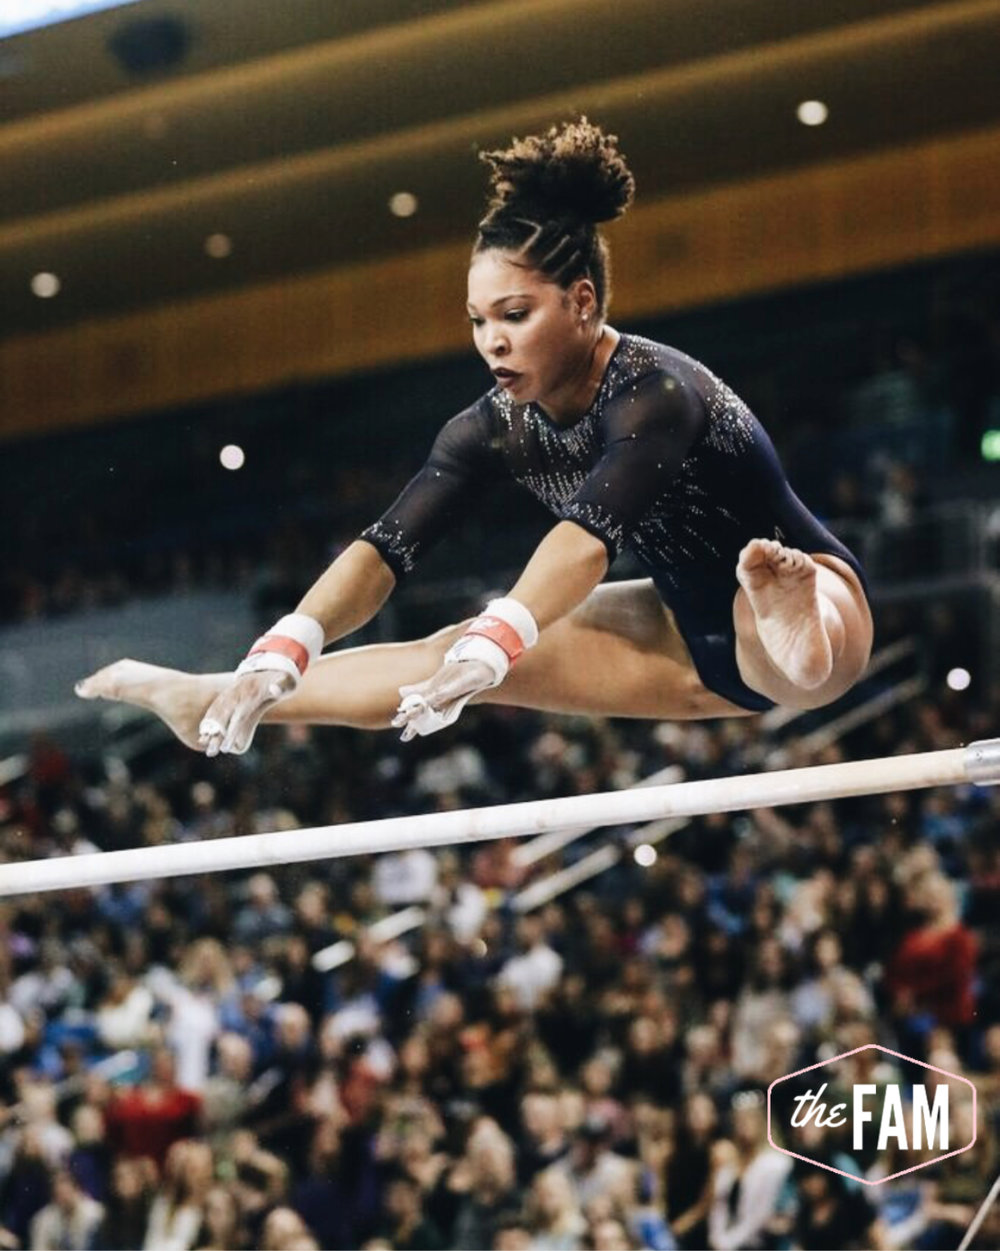 Ep. #8 - UCLA Gymnastics Journey Paved by Faith - with JaNay Honest - JaNay worked her way from being an unassuming recruit, to a walk on at UCLA, to a National CHAMP! Listen to her whole story - trusting God and working incredibly hard.